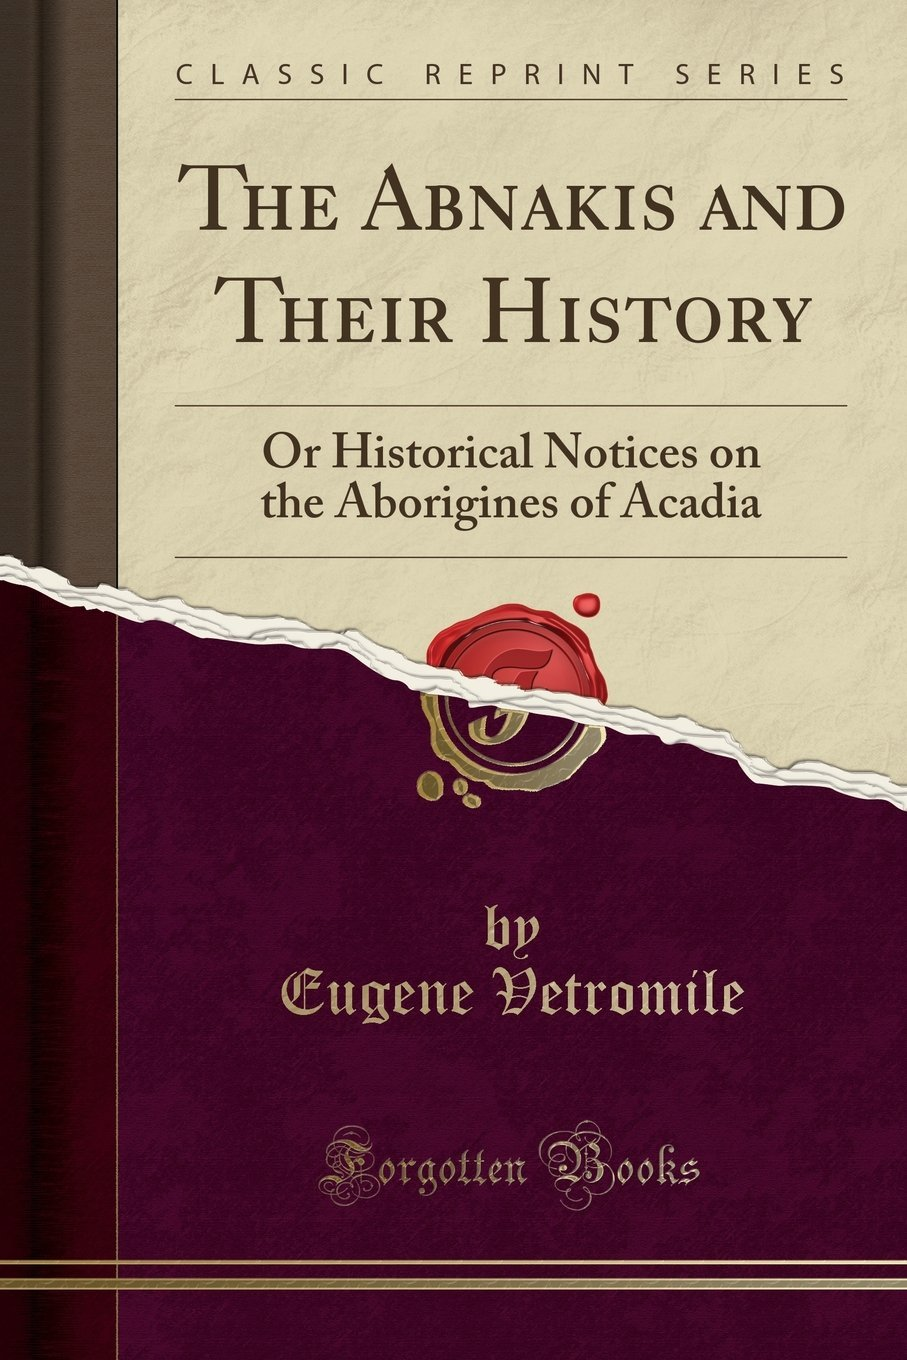 Download The Abnakis and Their History: Or Historical Notices on the Aborigines of Acadia (Classic Reprint) ebook